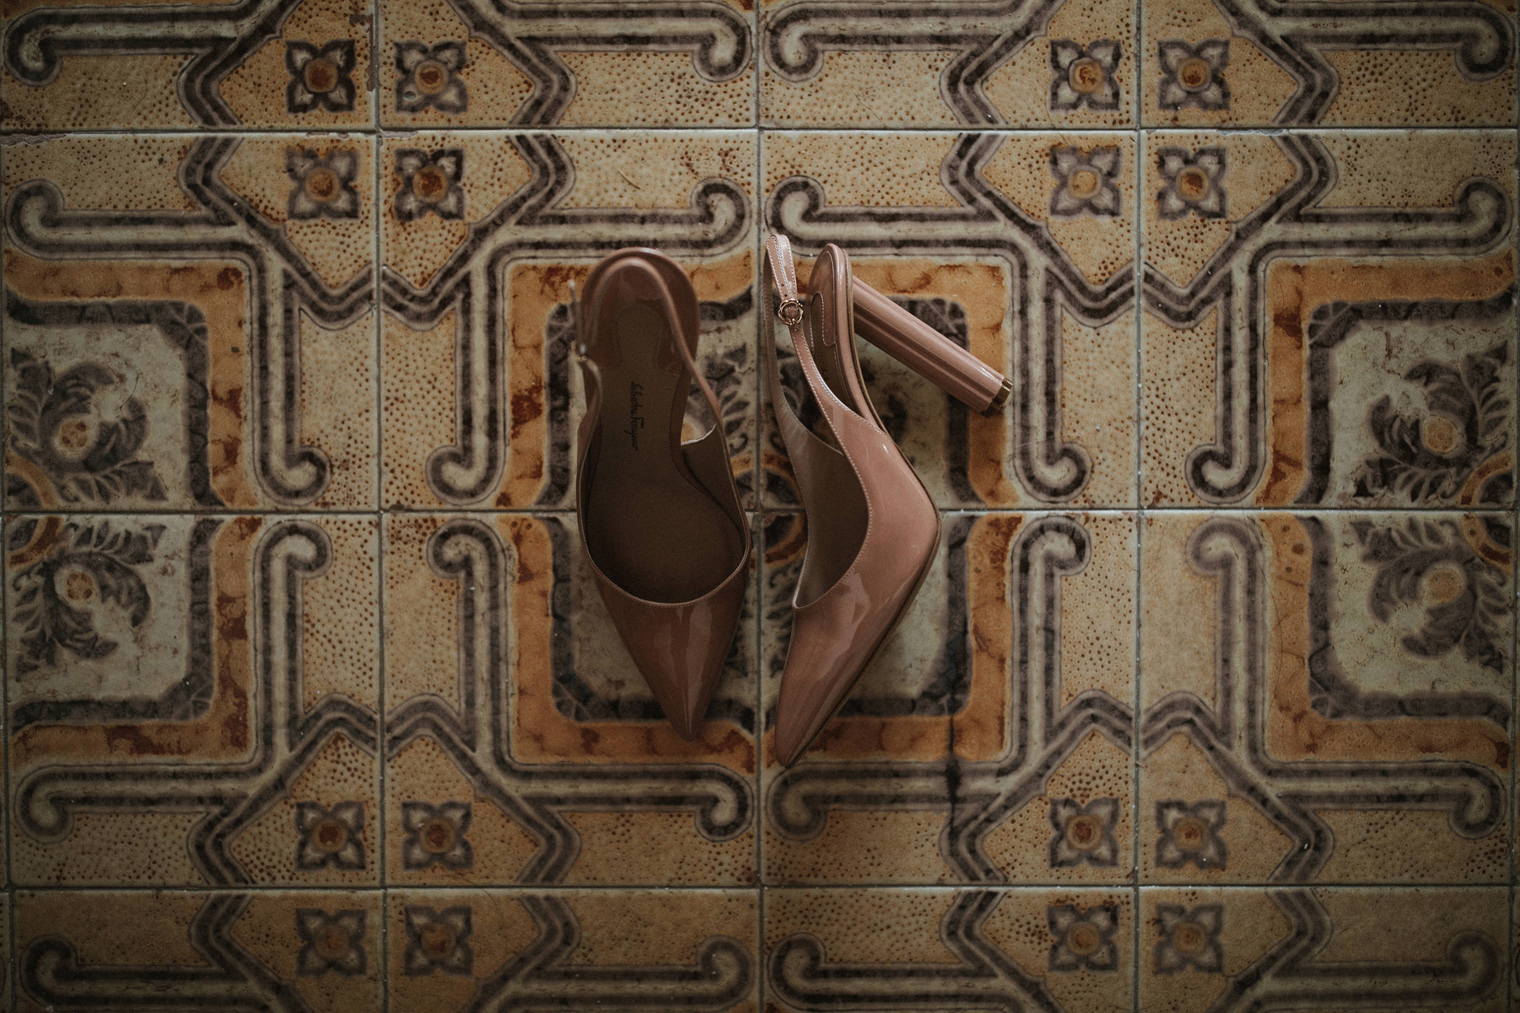 Salvatore Ferragamo shoes on interesting tiles in Italy